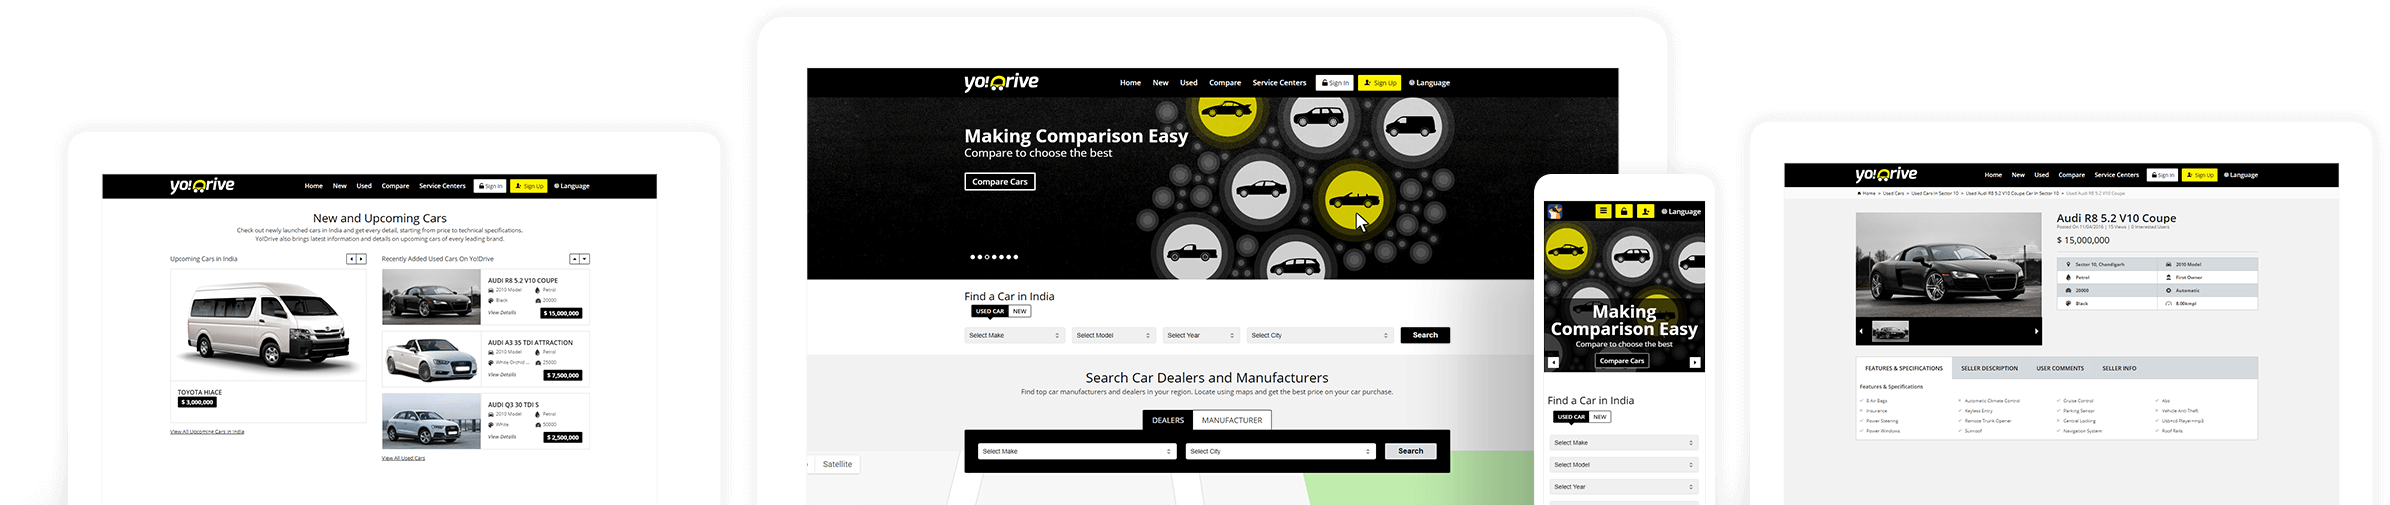 Yo!Drive Car Marketplace Software